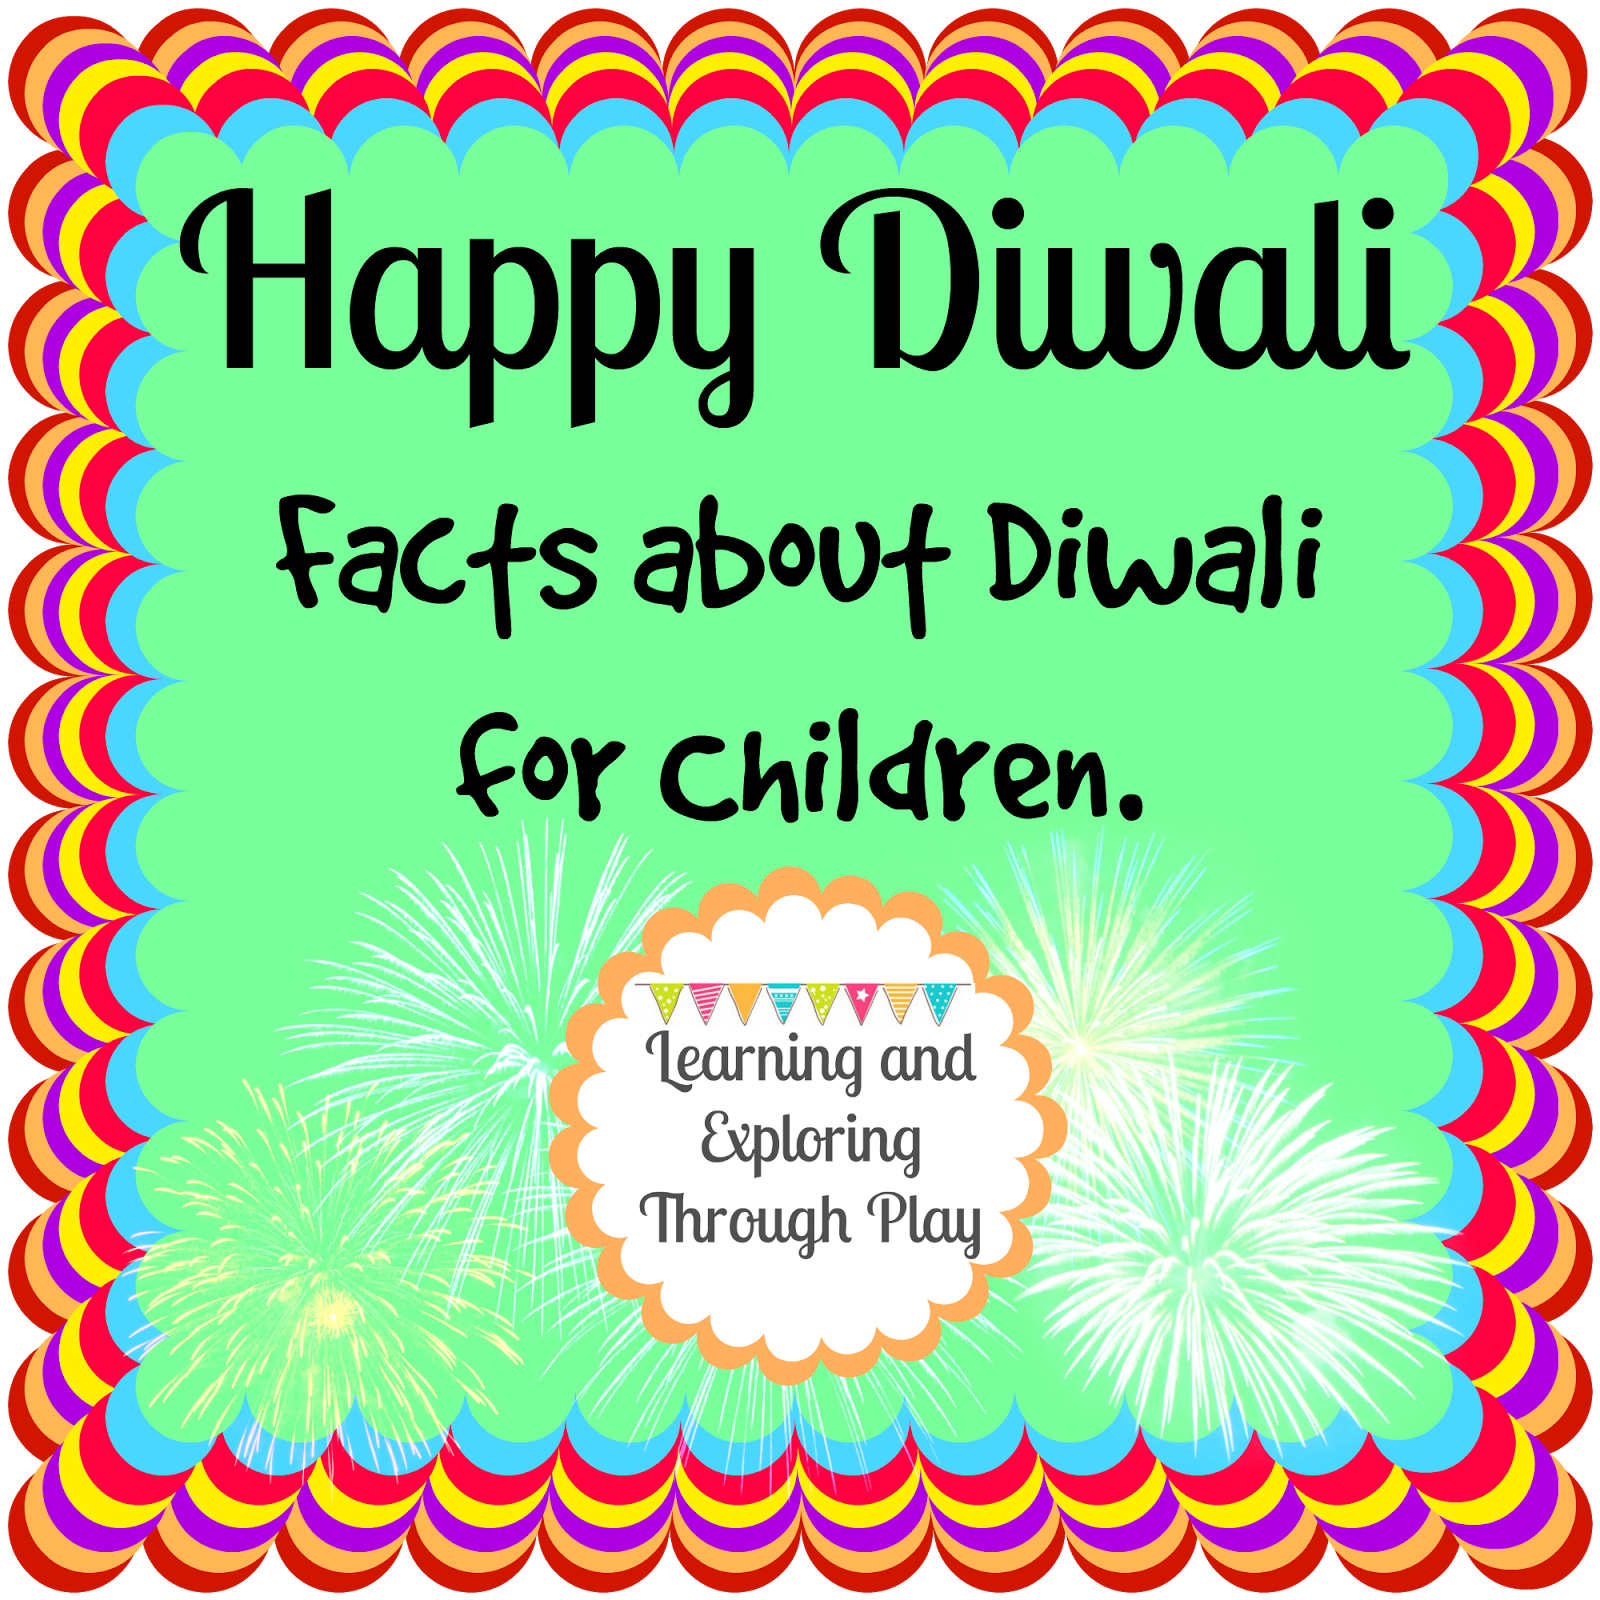 Learning And Exploring Through Play Diwali Facts For Children